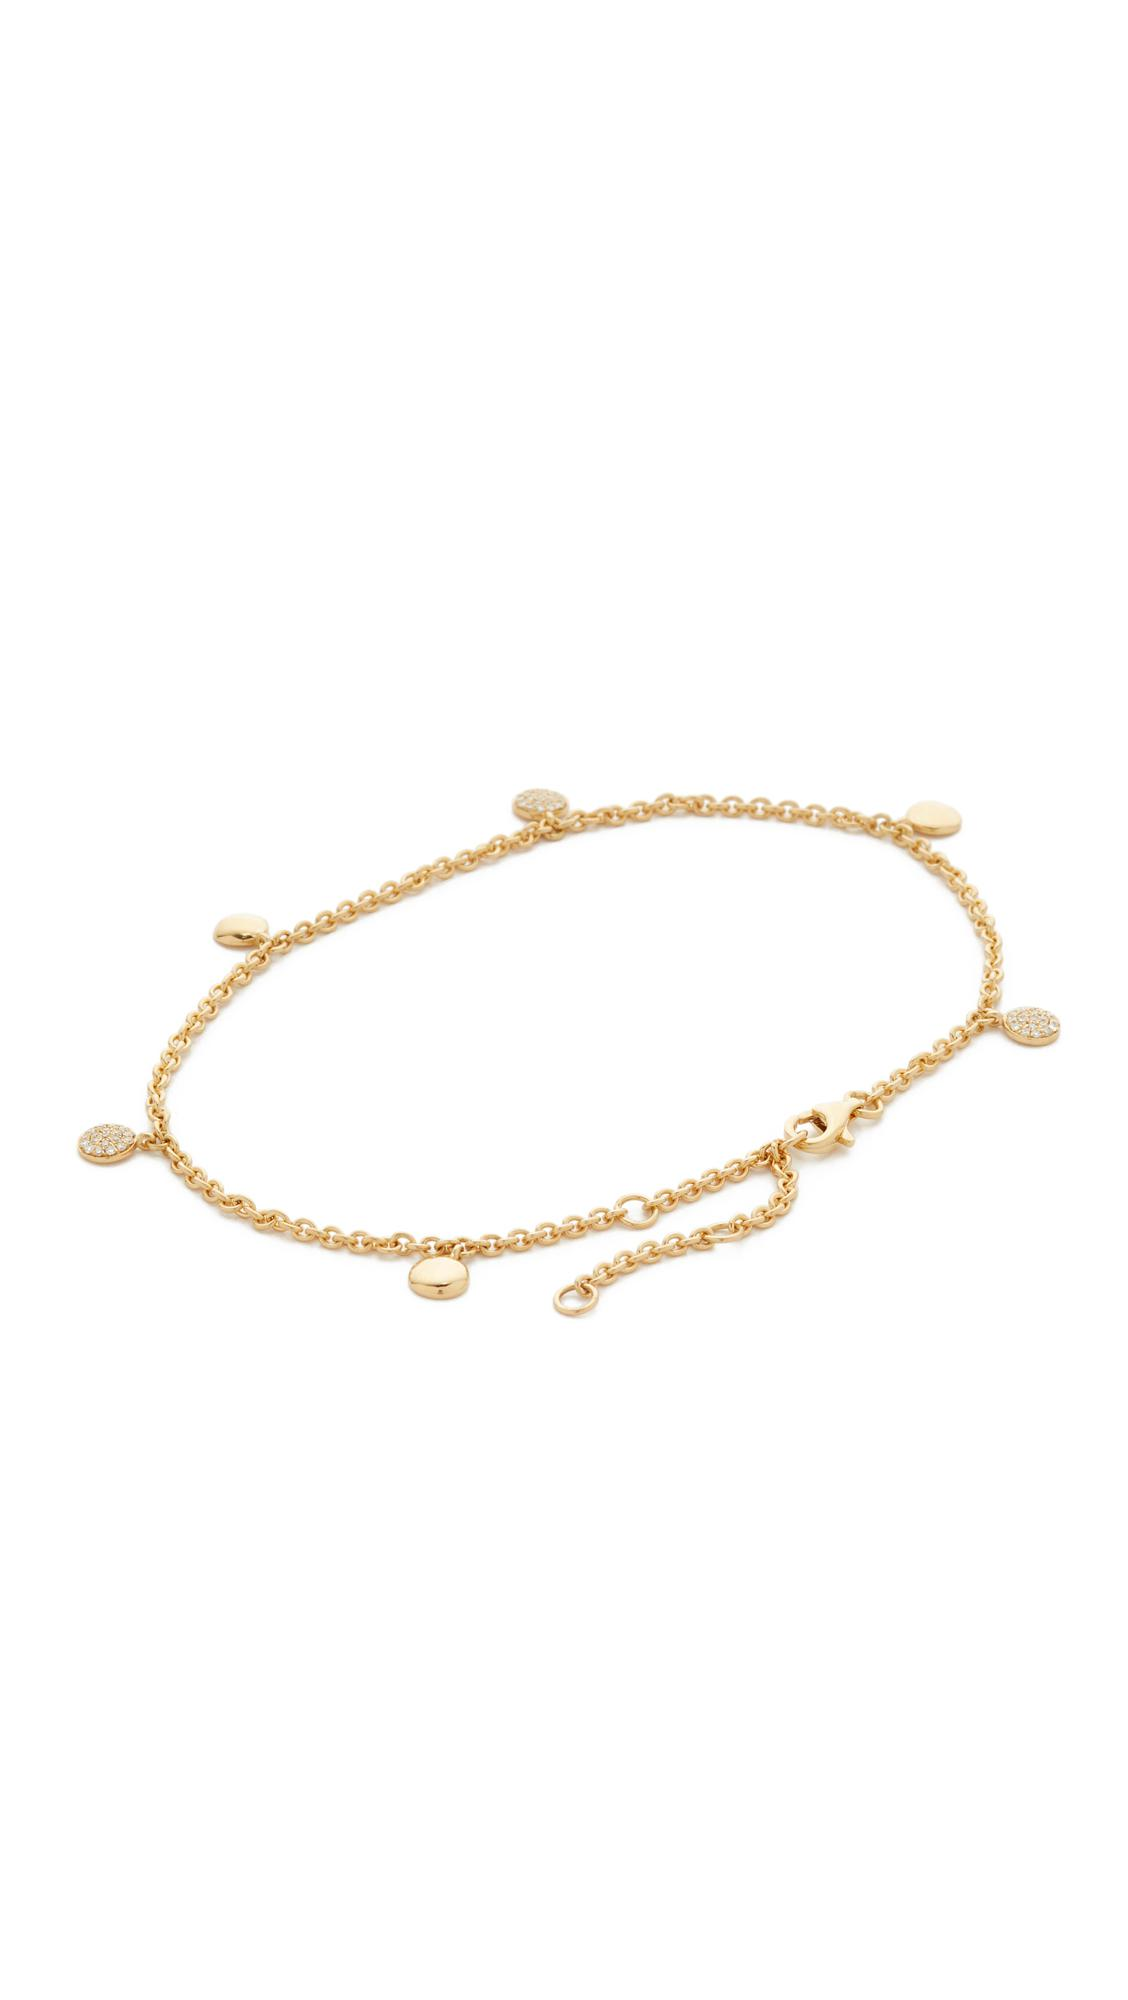 chain archives product anklet jewels link bracelet by anklets gold cuban category karat elle ankle